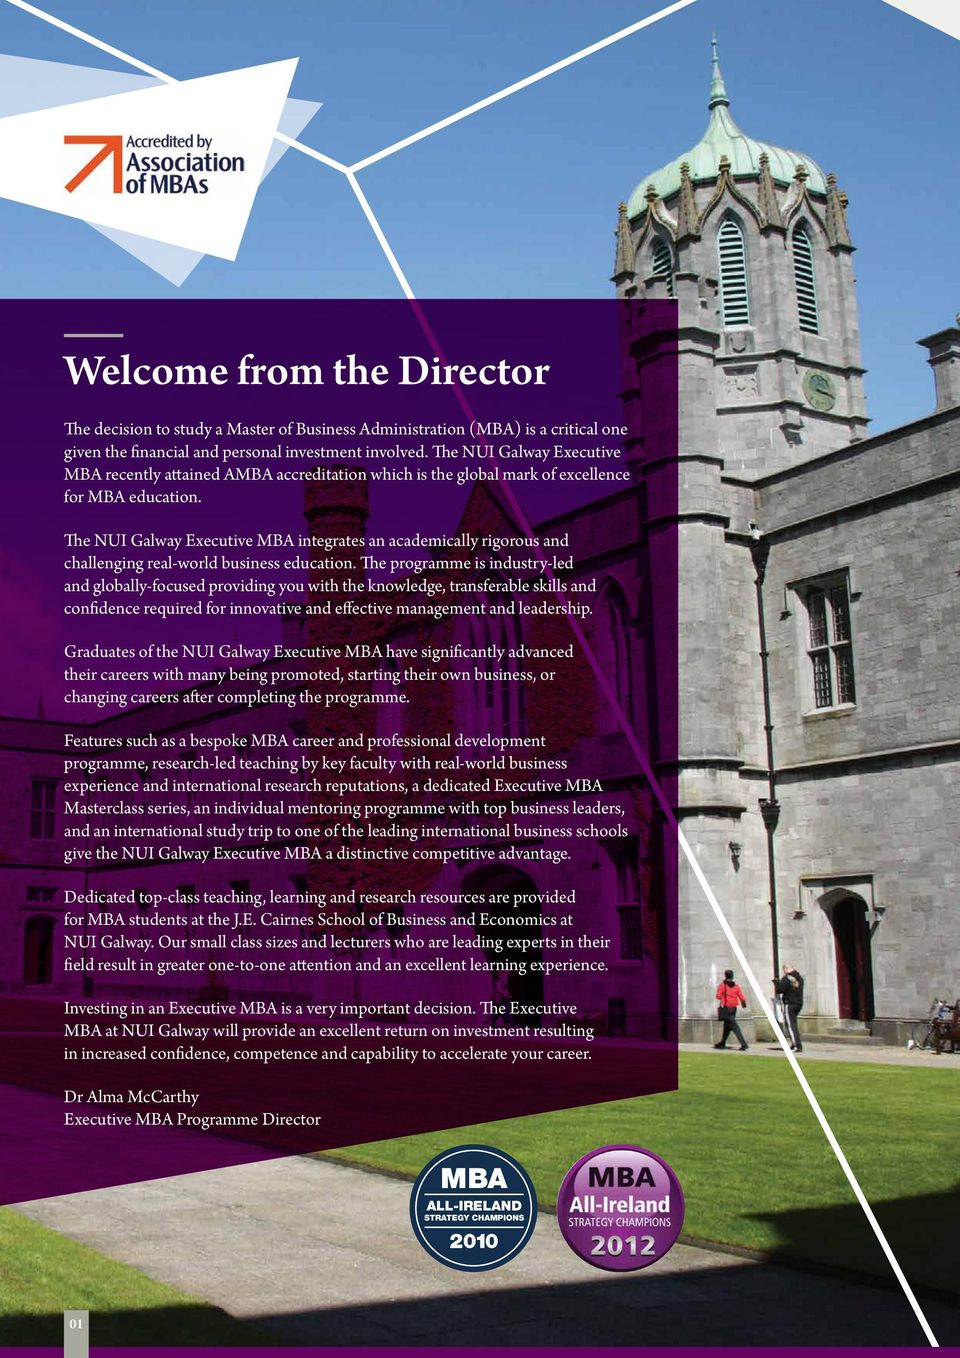 The NUI Galway Executive MBA integrates an academically rigorous and challenging real-world business education.